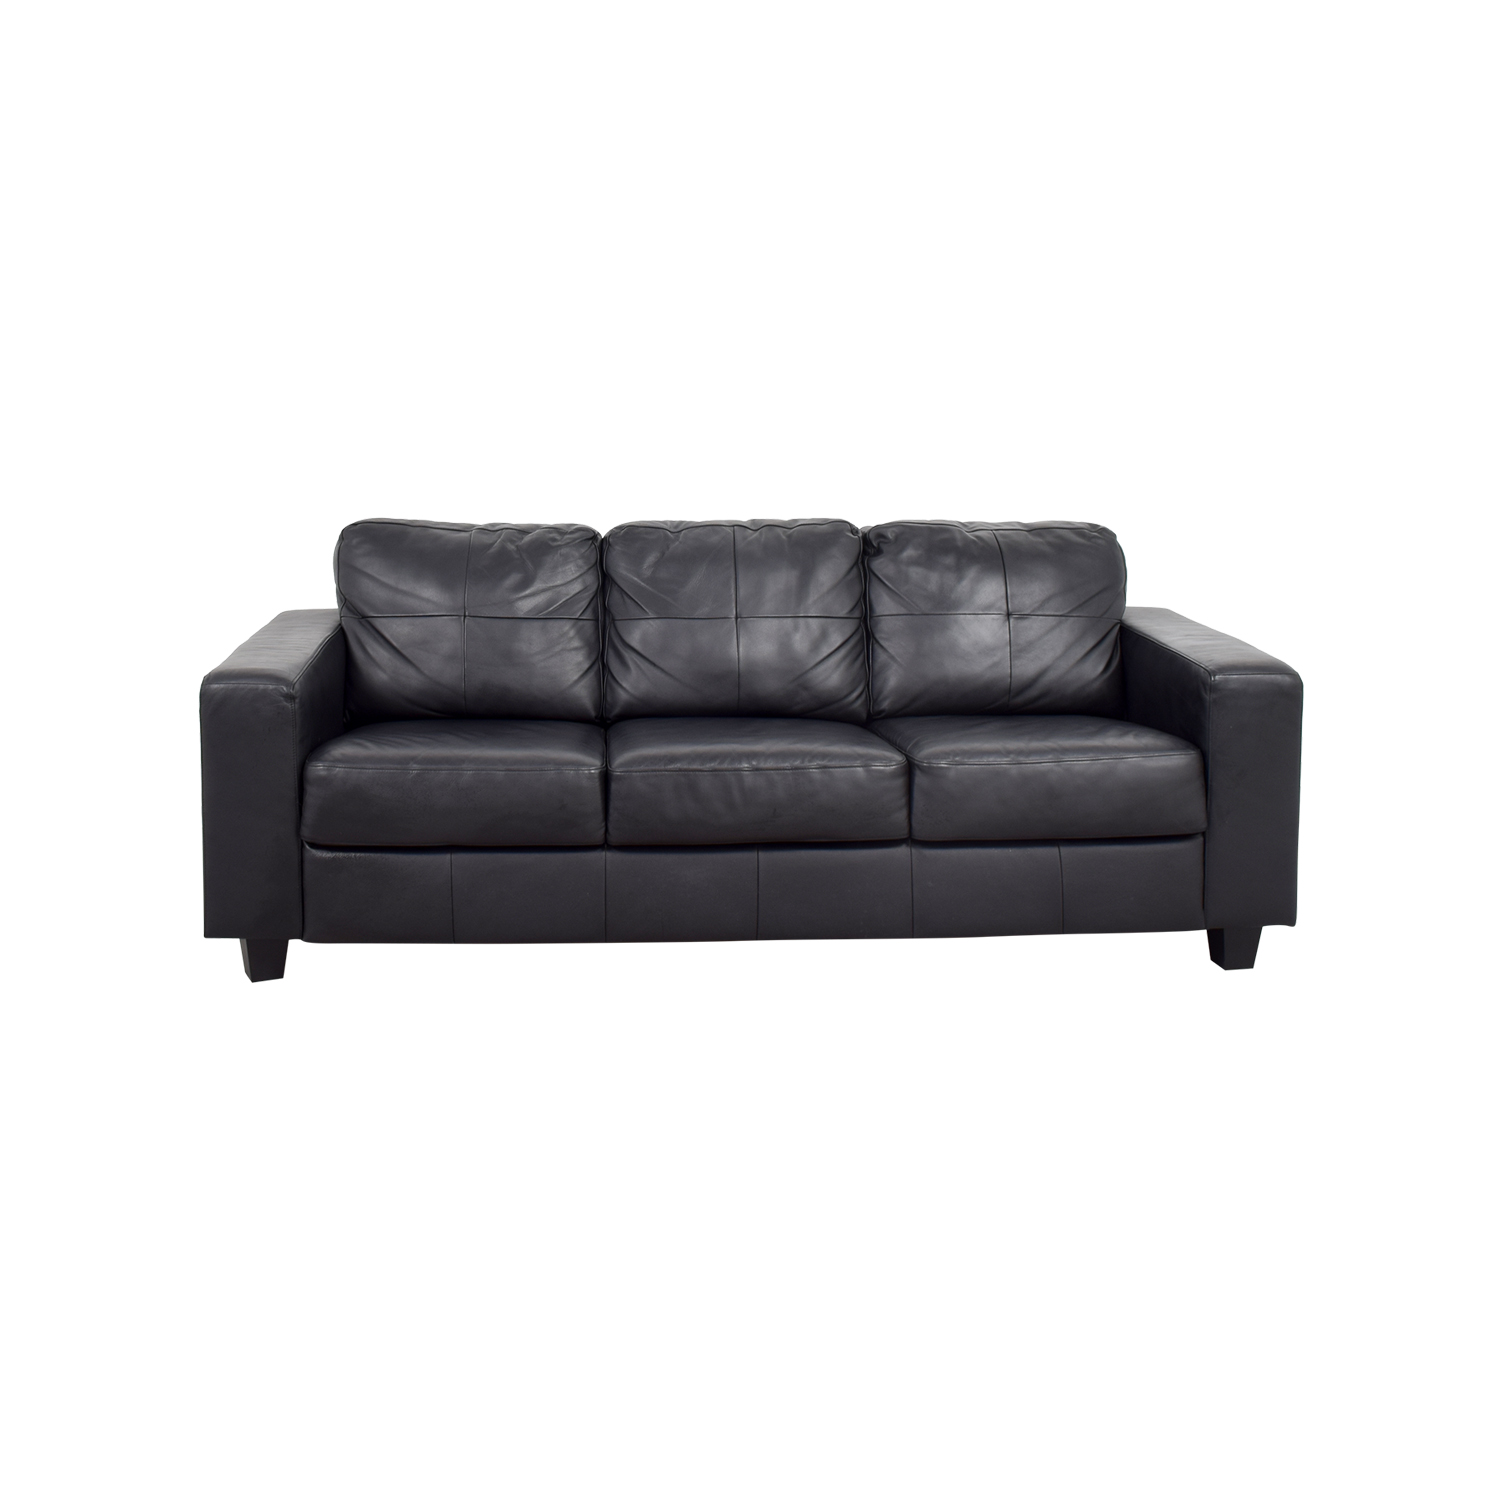 Ikea White Leather Couch Sofas: IKEA IKEA Skogaby Black Leather Sofa / Sofas